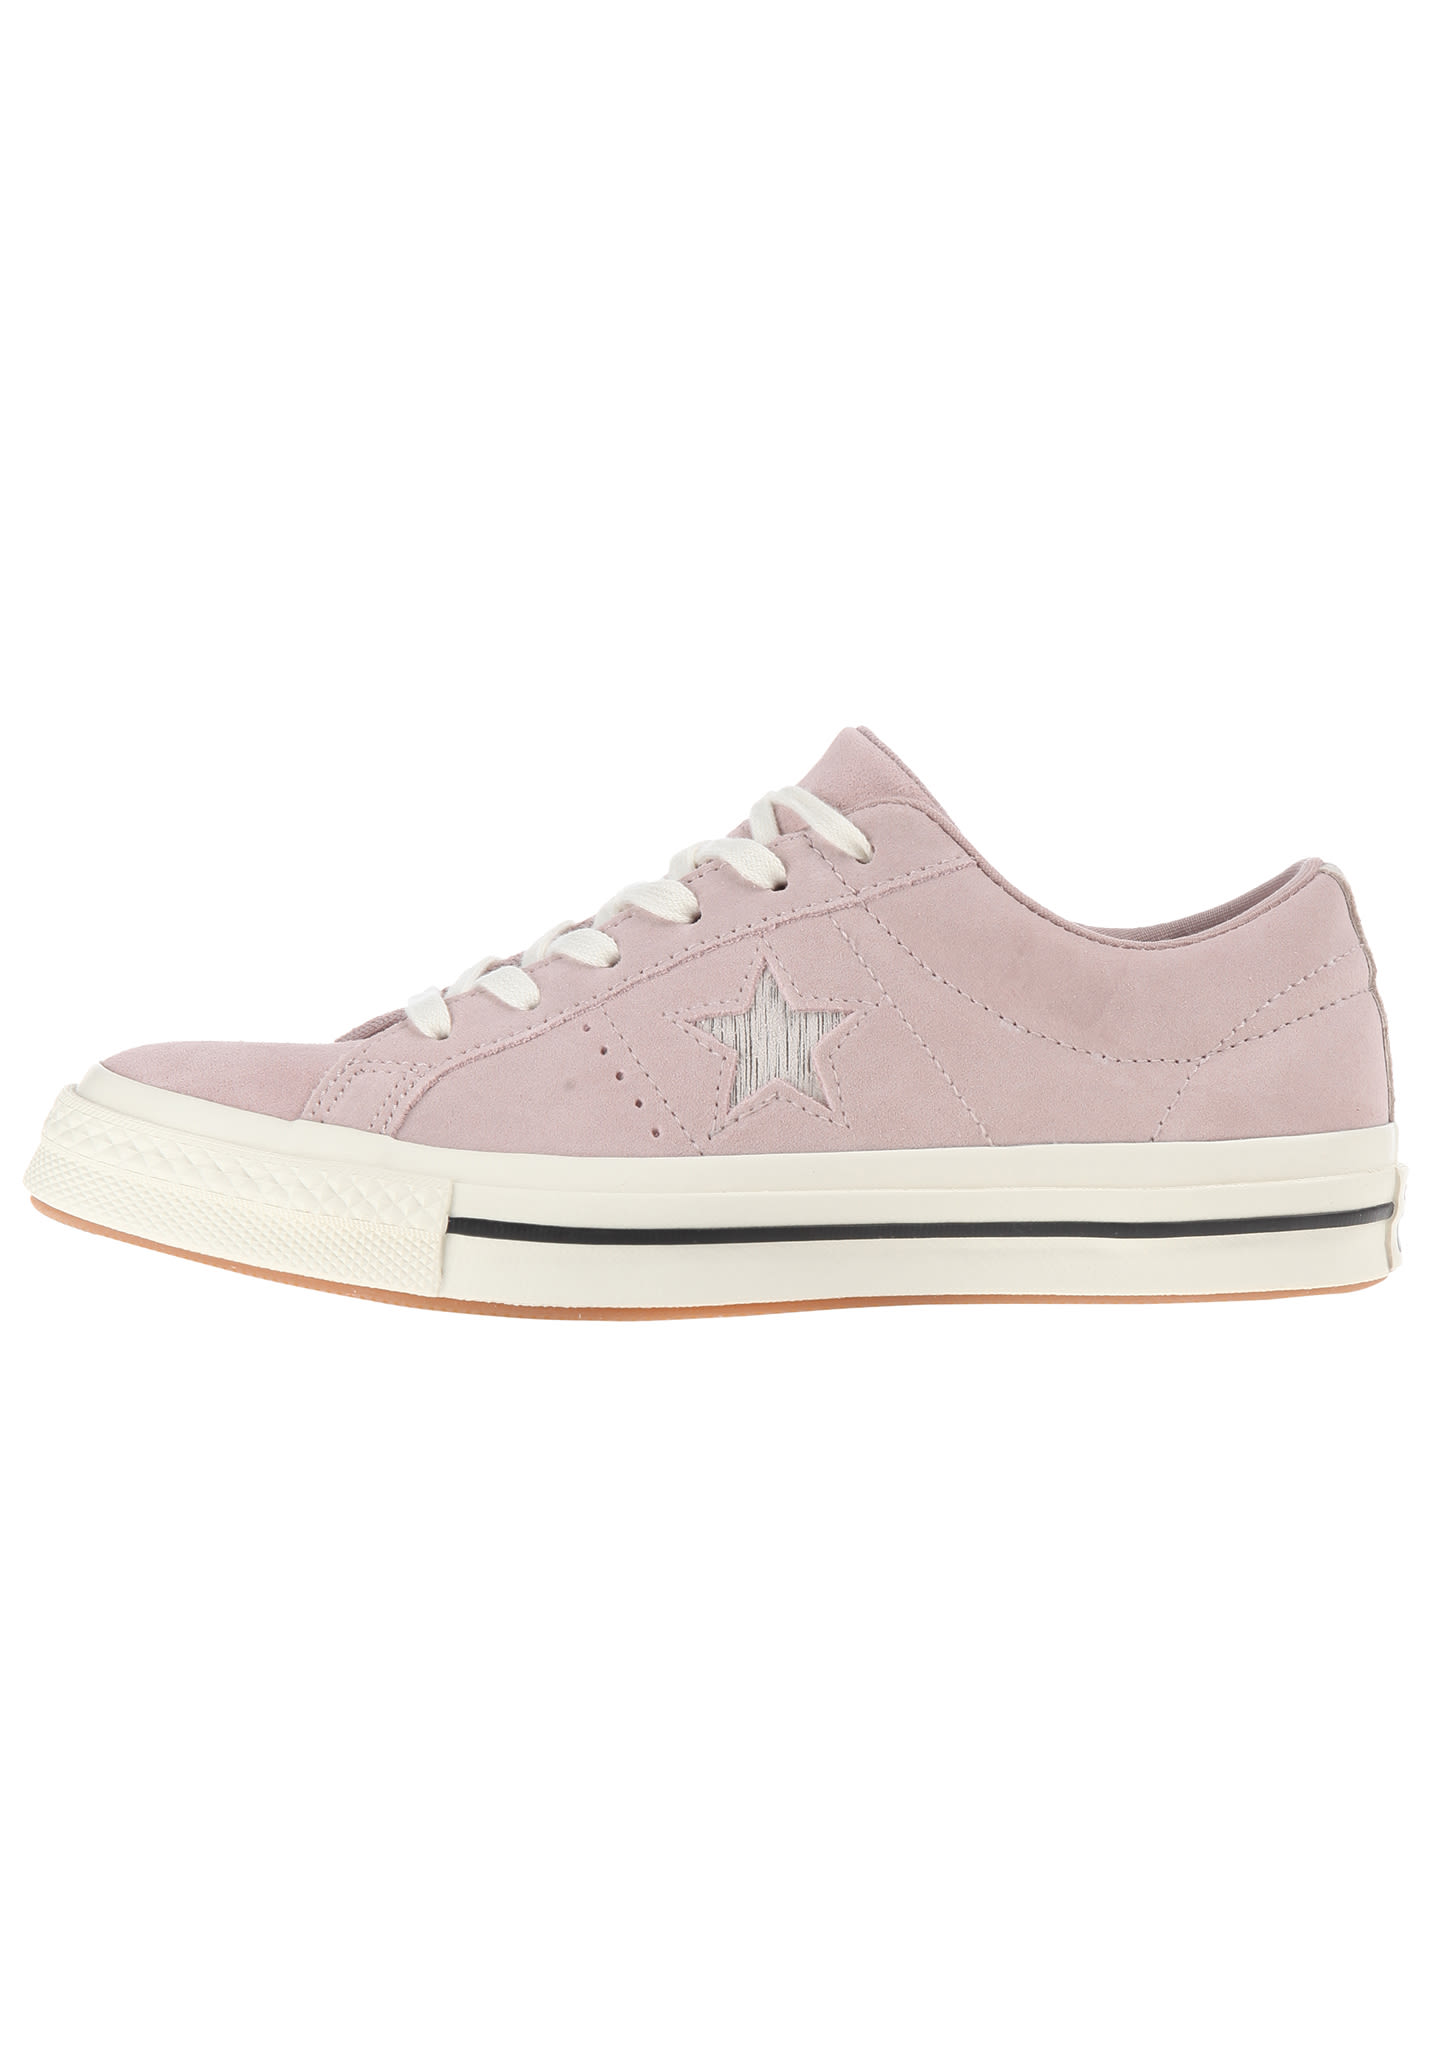 Converse One Star Ox - Sneakers for Women - Pink - Planet Sports b04423f74